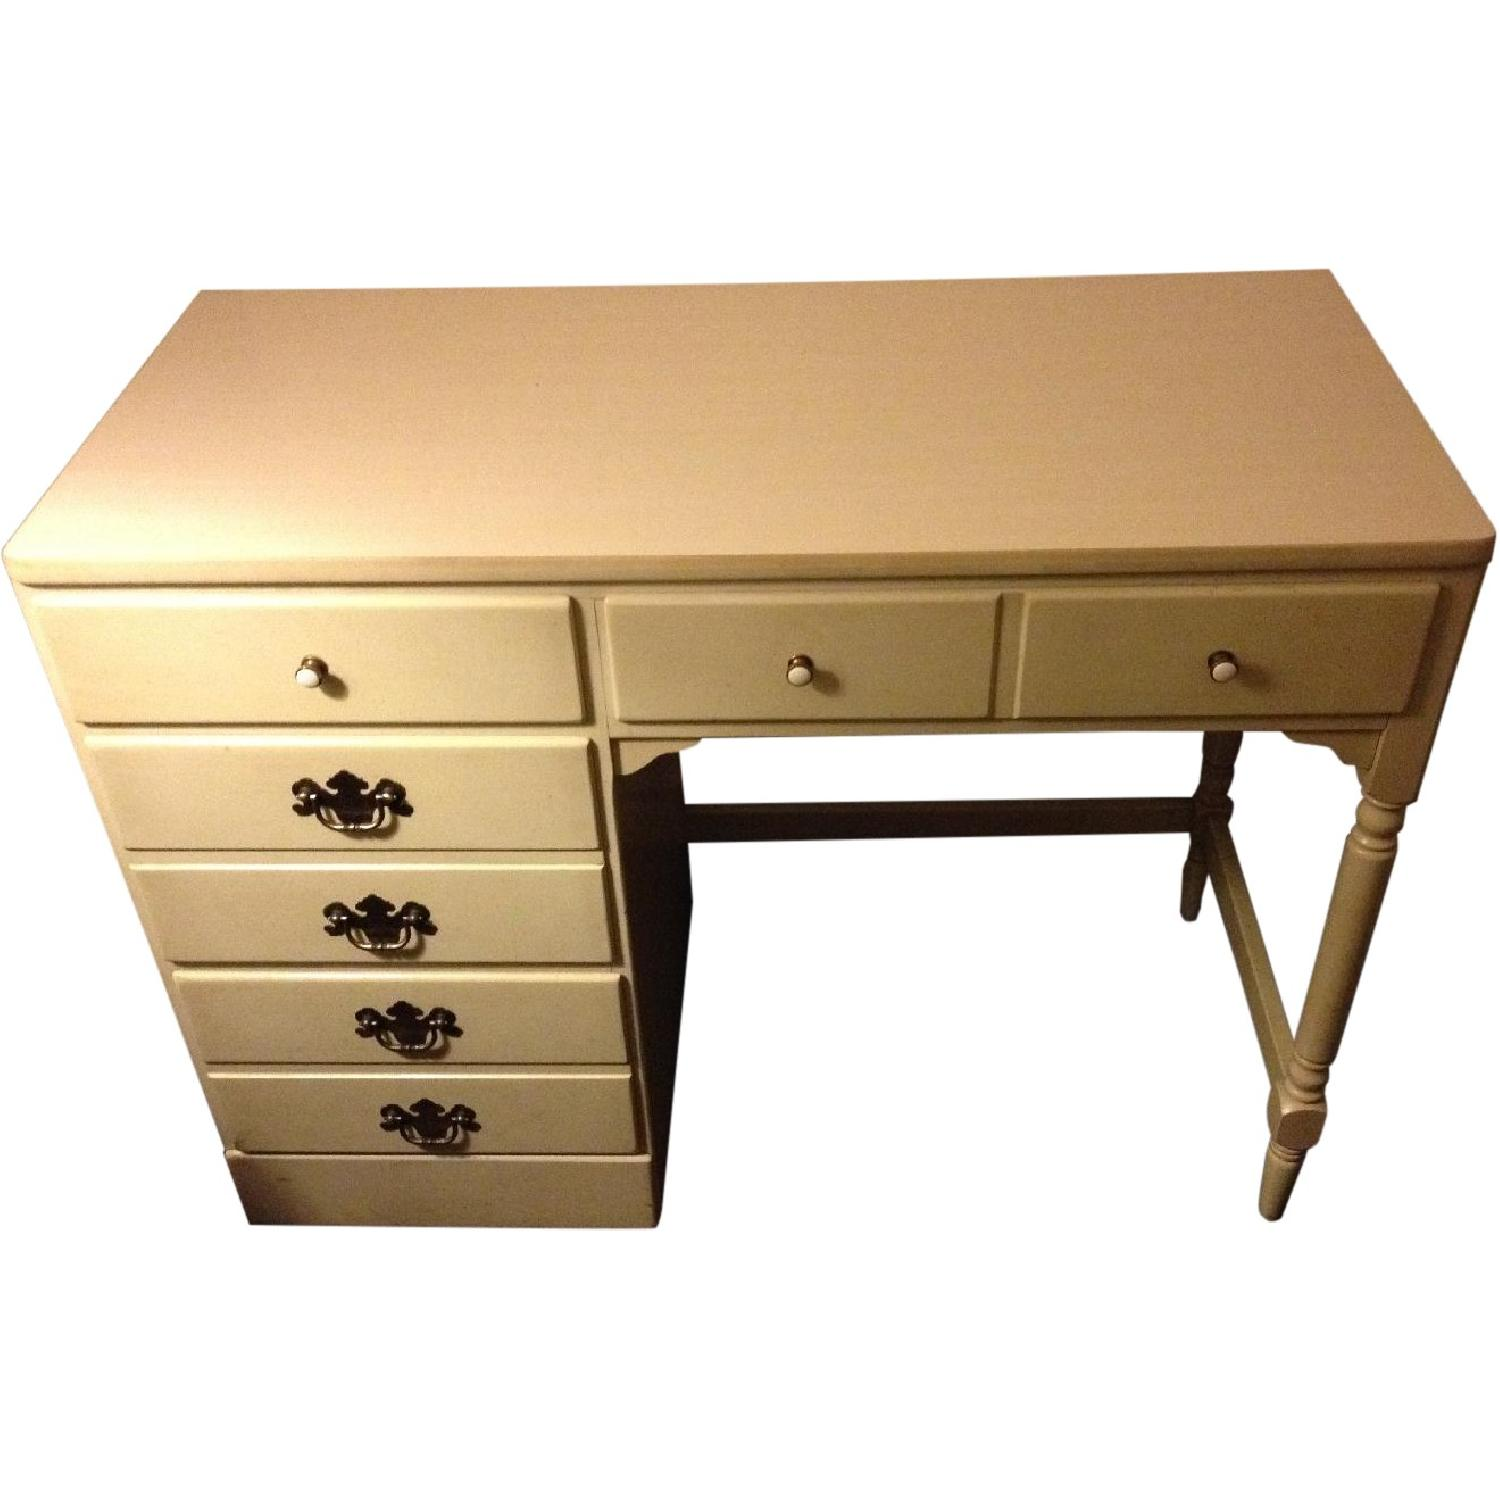 Used Ethan Allen Vintage Baumritter Desk for sale in NYC